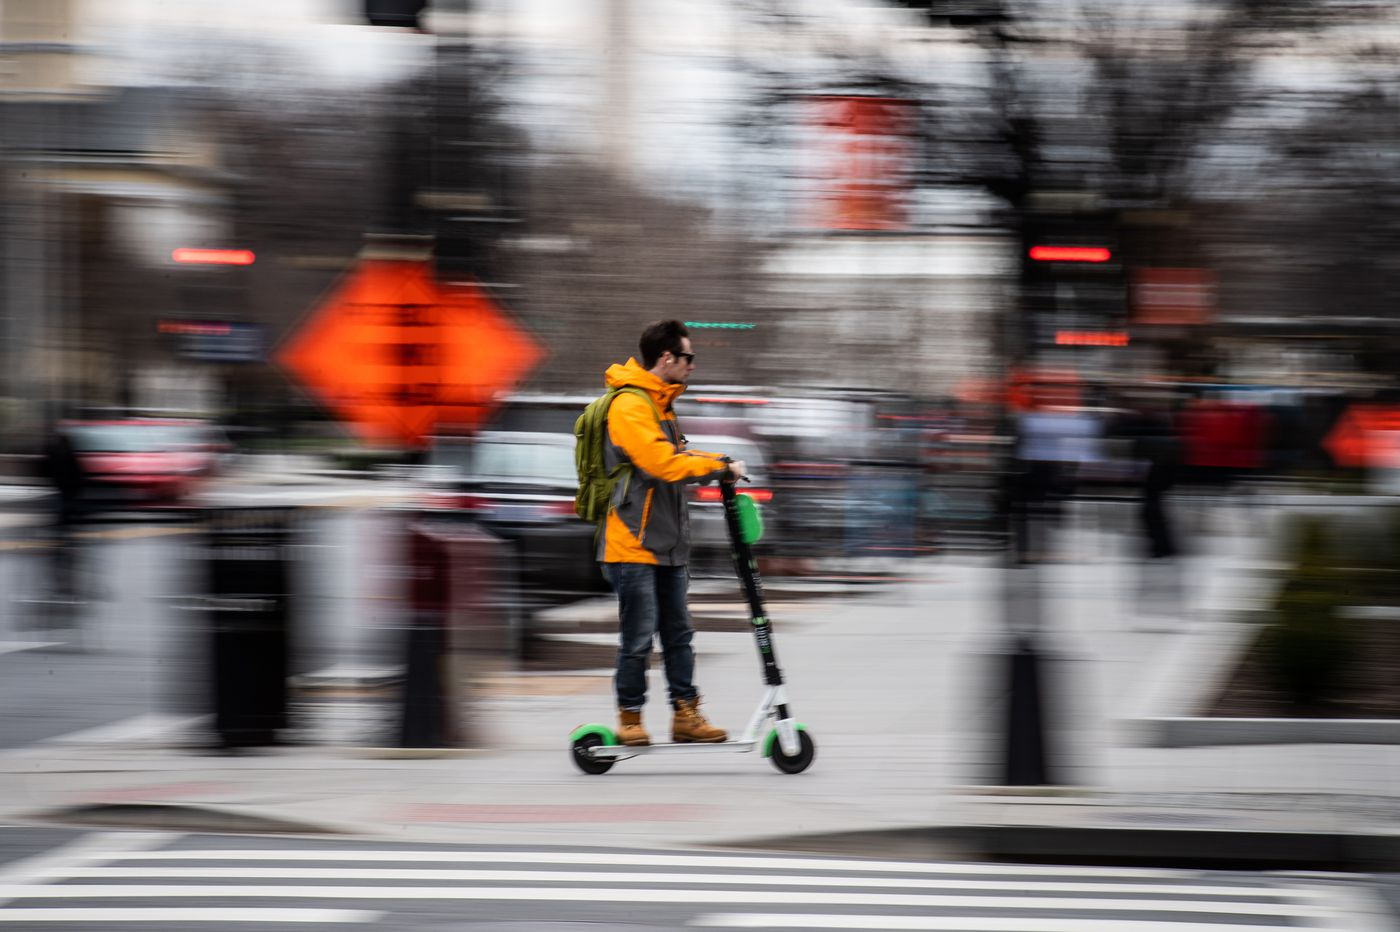 E-scooters may be rolling into Pa., but are Philly streets prepared? Pro/Con | Opinion